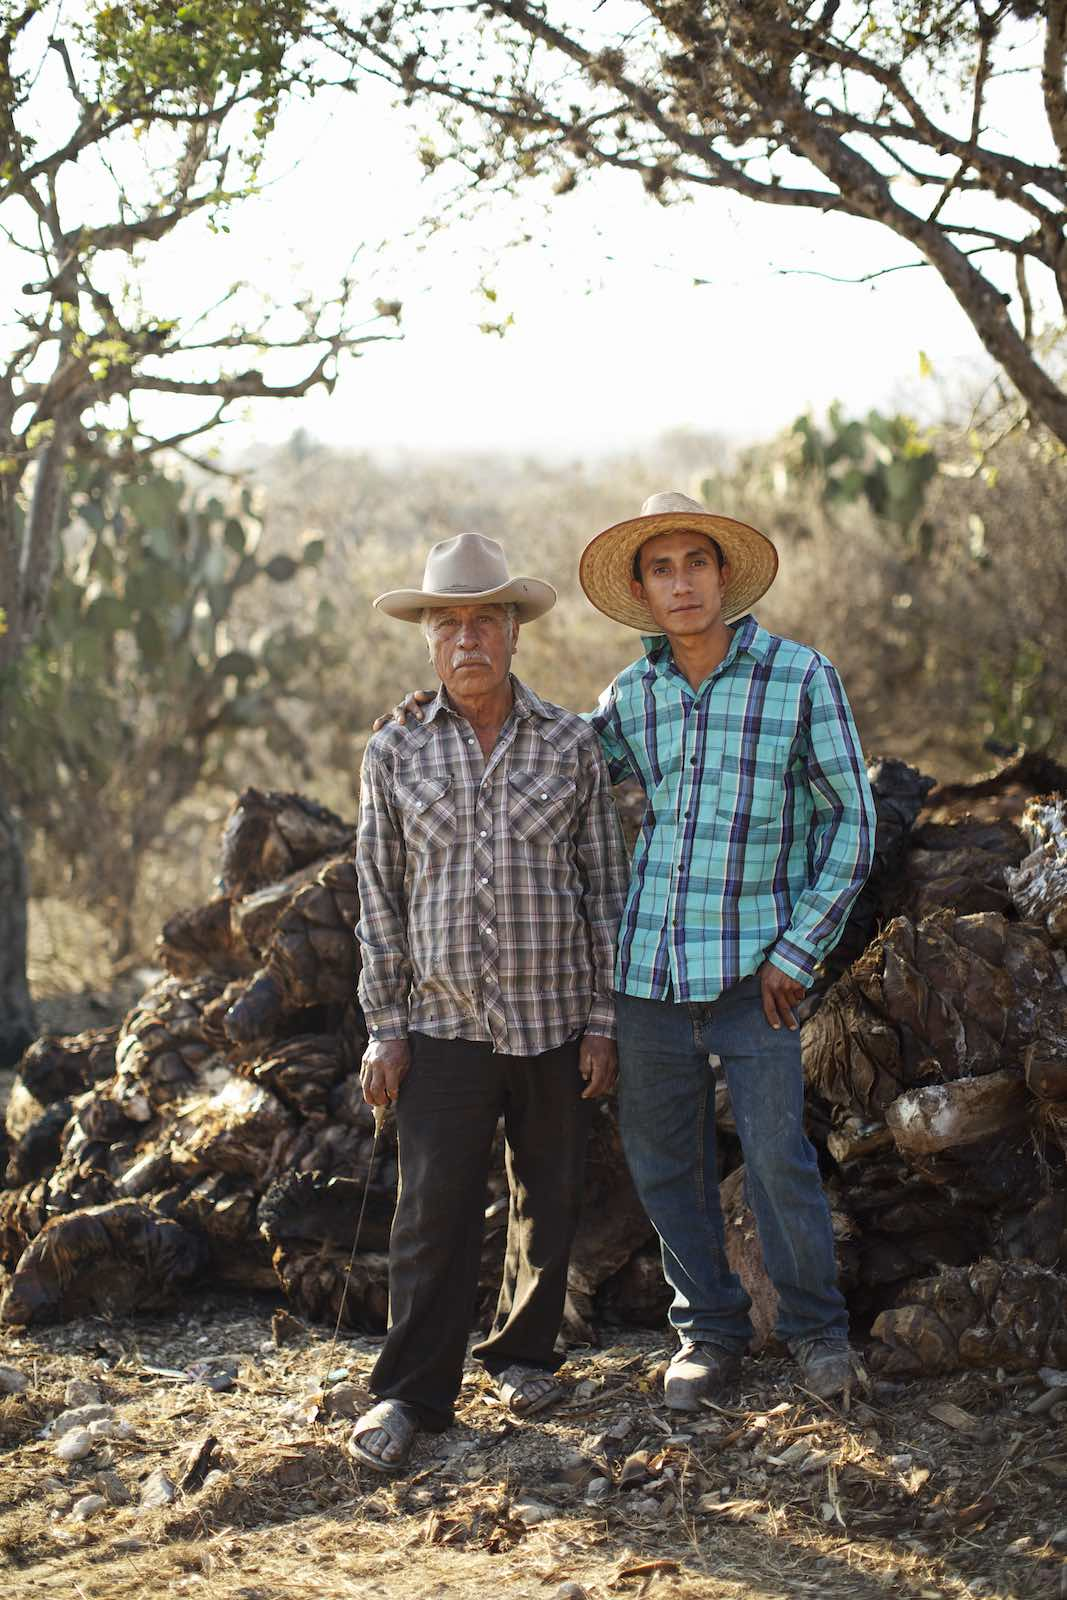 Jody Horton Photography - Two farmers during mezcal production.